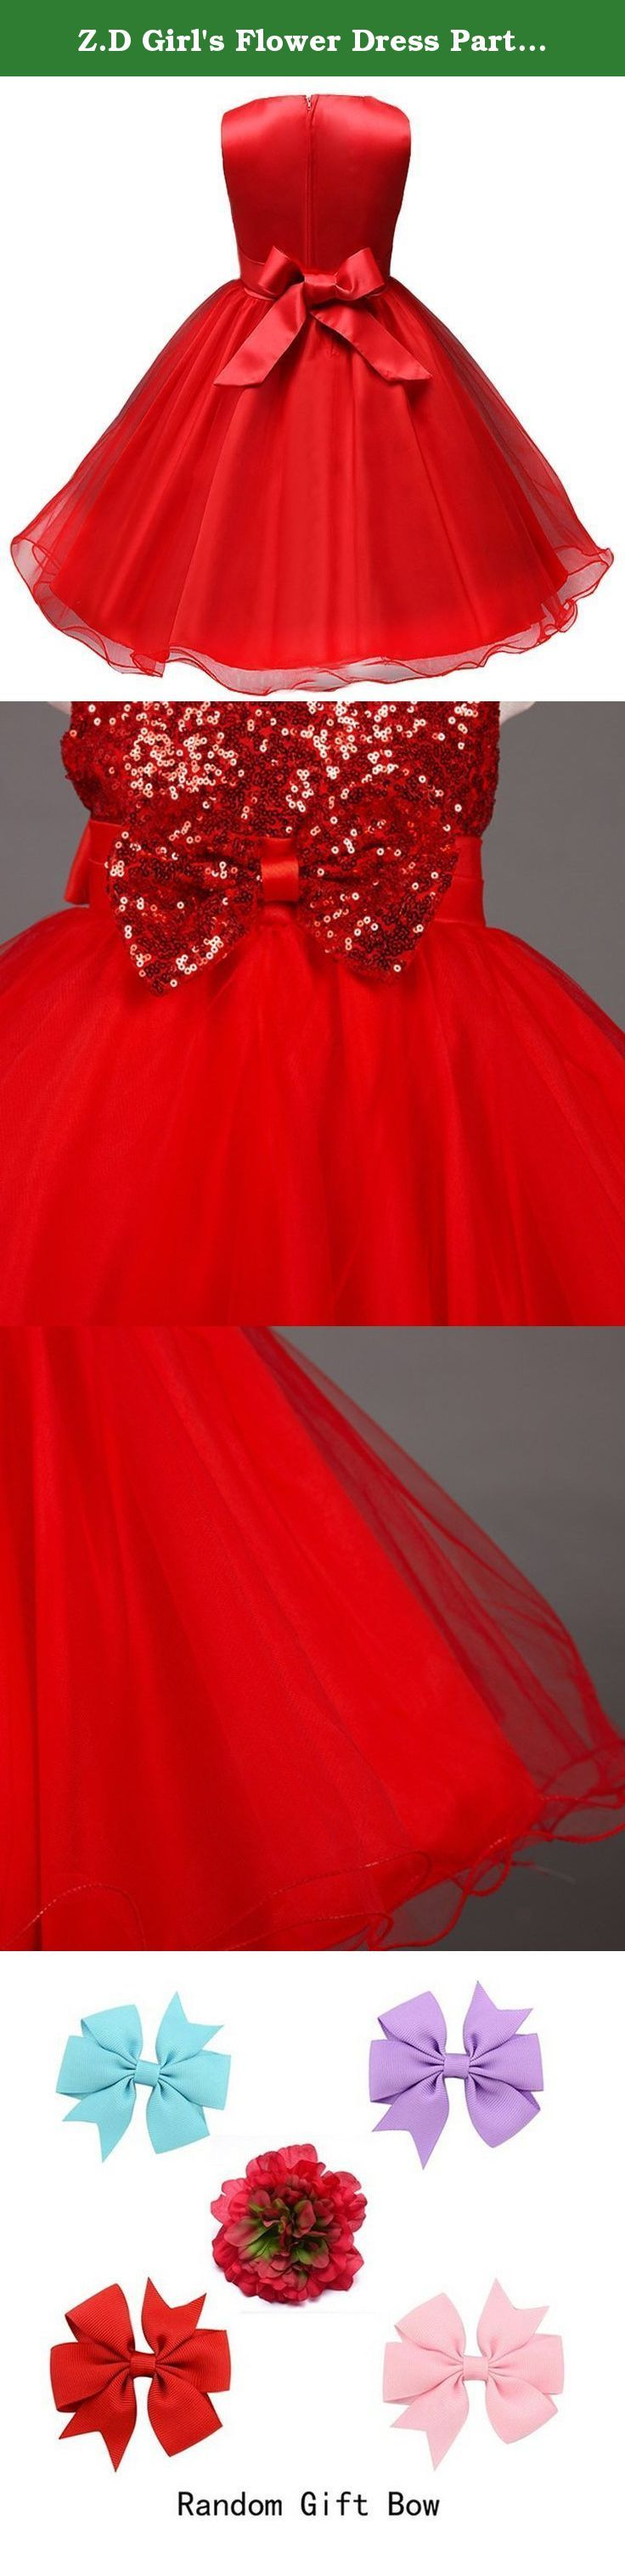 "Z.D Girl's Flower Dress Party Wedding Gown Bridesmaid Tulle Ruffle Dress Girl, Red, US 7. This beautiful dress is made of high quality material,which is handmade beautiful floral dress.Wearing it,you can feel like yourself look like one princess. Please check the size chart on the amazon carefully.If there is any question,please feel free to contact with us. 100% Polyester. Hand wash. Bust:Size3/US 2T:21.65"" Size4/US 3T:22.83"" Size6/US 4:23.62"" Size8/US 6:25.2"" Size10/US 6X:26"" Size12/US..."